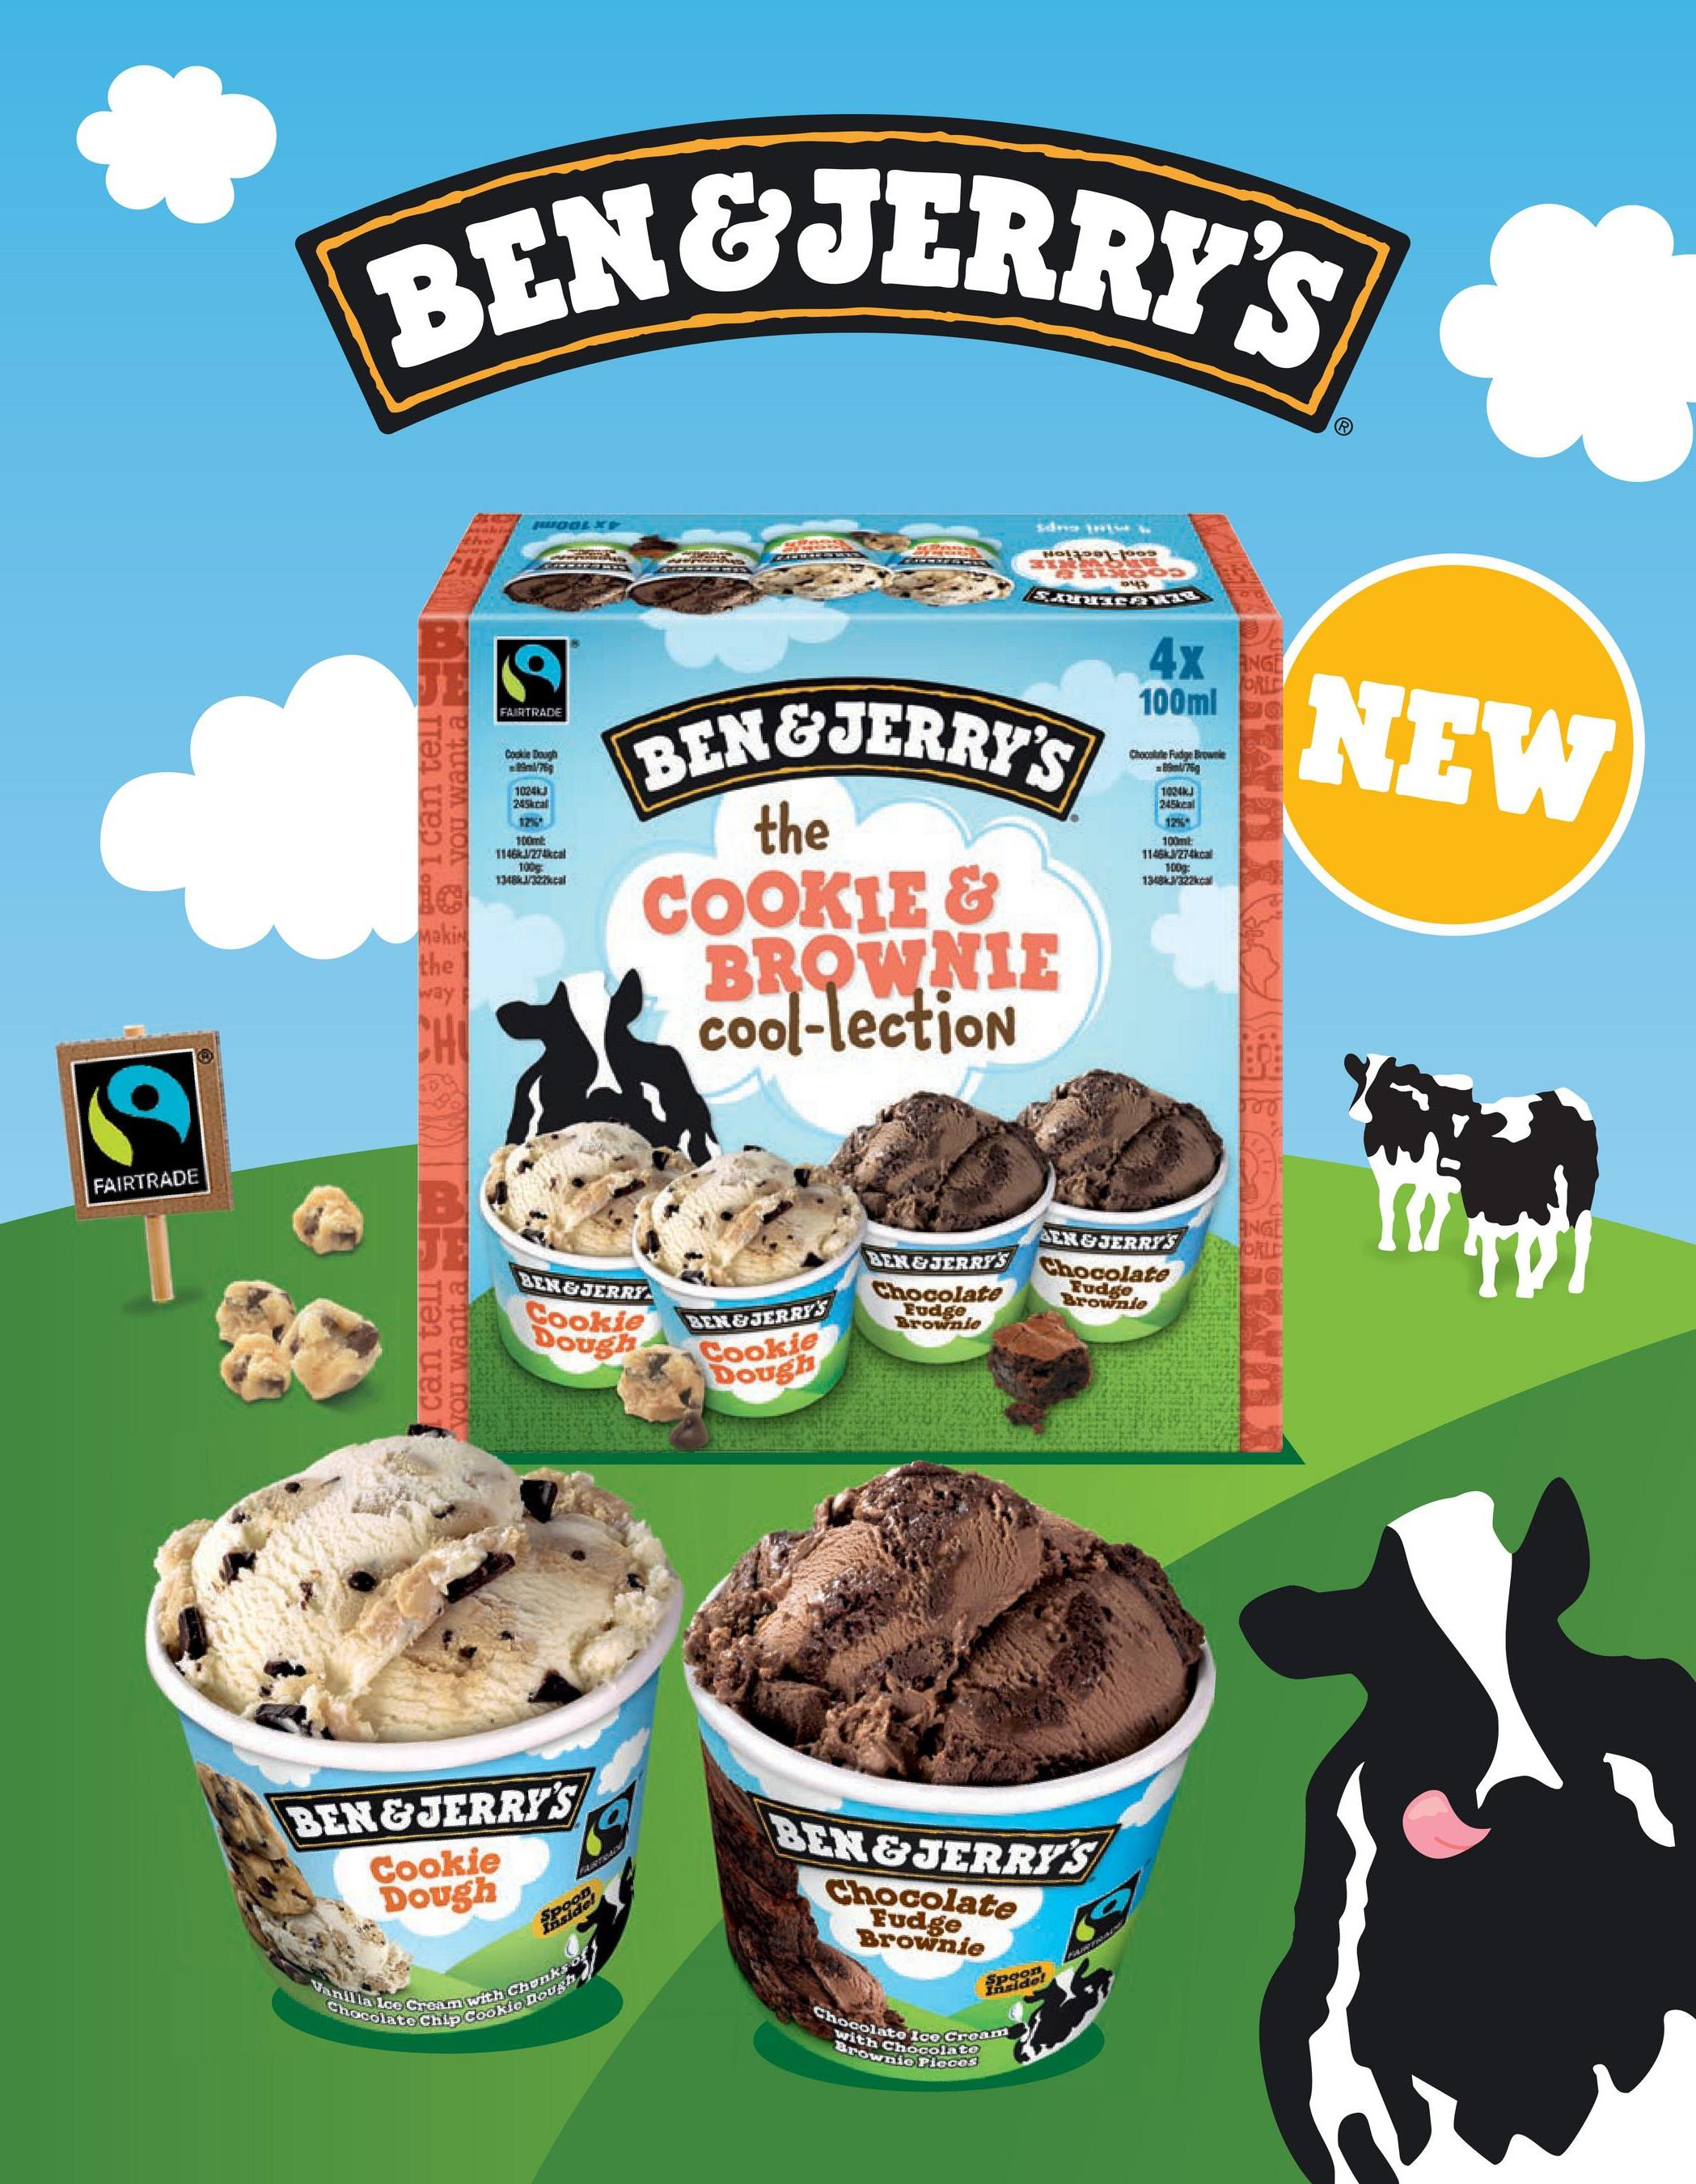 BEN&JERRY'S DOEX ***** Ho991-1os CETE UN лицевих 4x Na ORLD 100ml FAIRTRADE Cookie Daugh 9765 NEW BEN&IERRY'S Chocolate Fudge Brown B769 edo can tell 10240 245kcal 1024) 245kcal 12% 100ml 1145kJ/274kcal 100 100m 11461/77kcal 100g Makin the way the COOKIE & BROWNIE cool-lection CHO a FAIRTRADE B. ANGE JORU AER & JERRY'S LEN & JERRFS Chocolate Budge Chocolate Brown.de Fudge Brown.de 11 BEN&JERRY Cookie Dough can tell LEN & JERRY'S Cookie Dough BEN&JERRY'S Cookie Dough 09 BEN&JERRY'S Chocolate LAM Spoo Fudge Brownie Spoon み! do! Vanilla Ice Cream with Chunks Chocolate Chip Cookie dough Chocolate Ice Cream with Chocolate Brownio Pieces